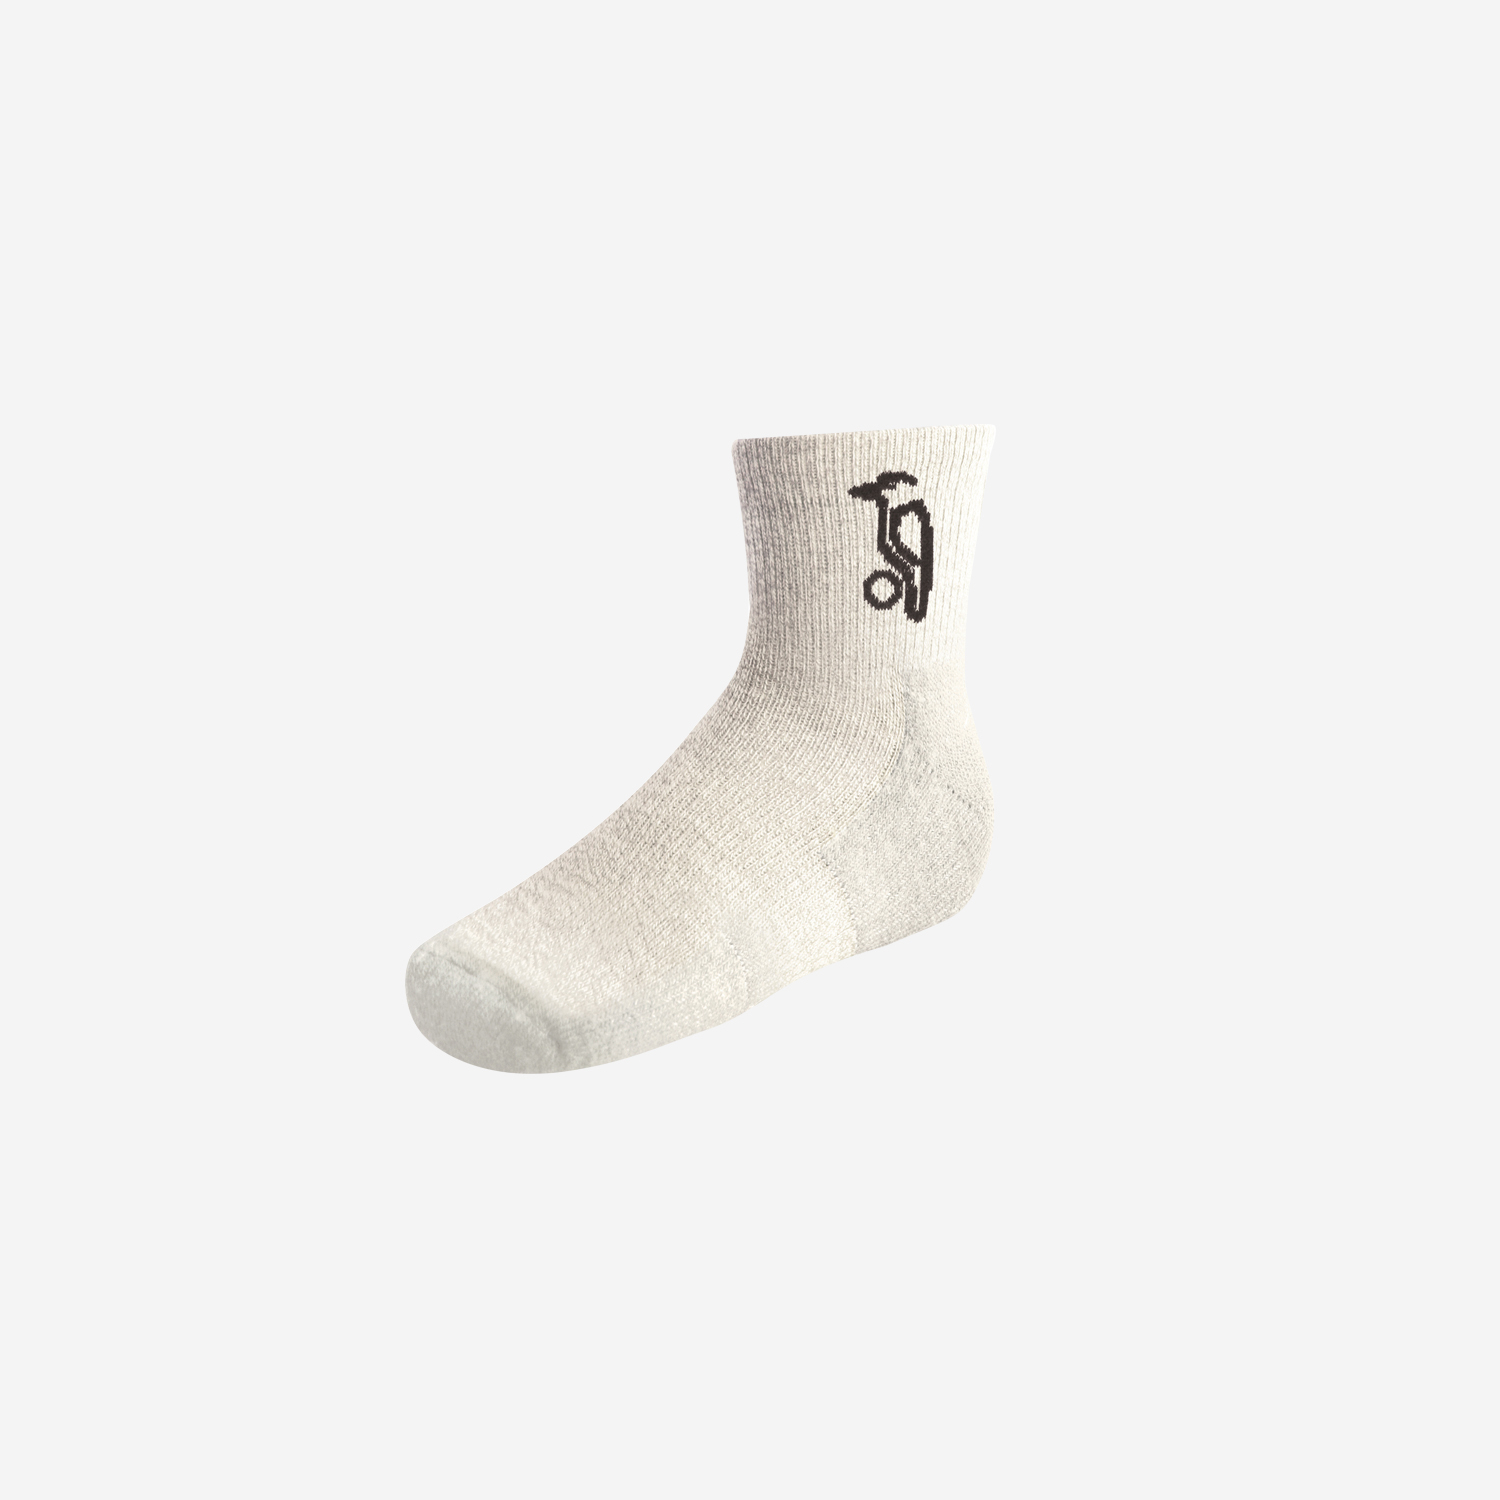 Players Ped Sock